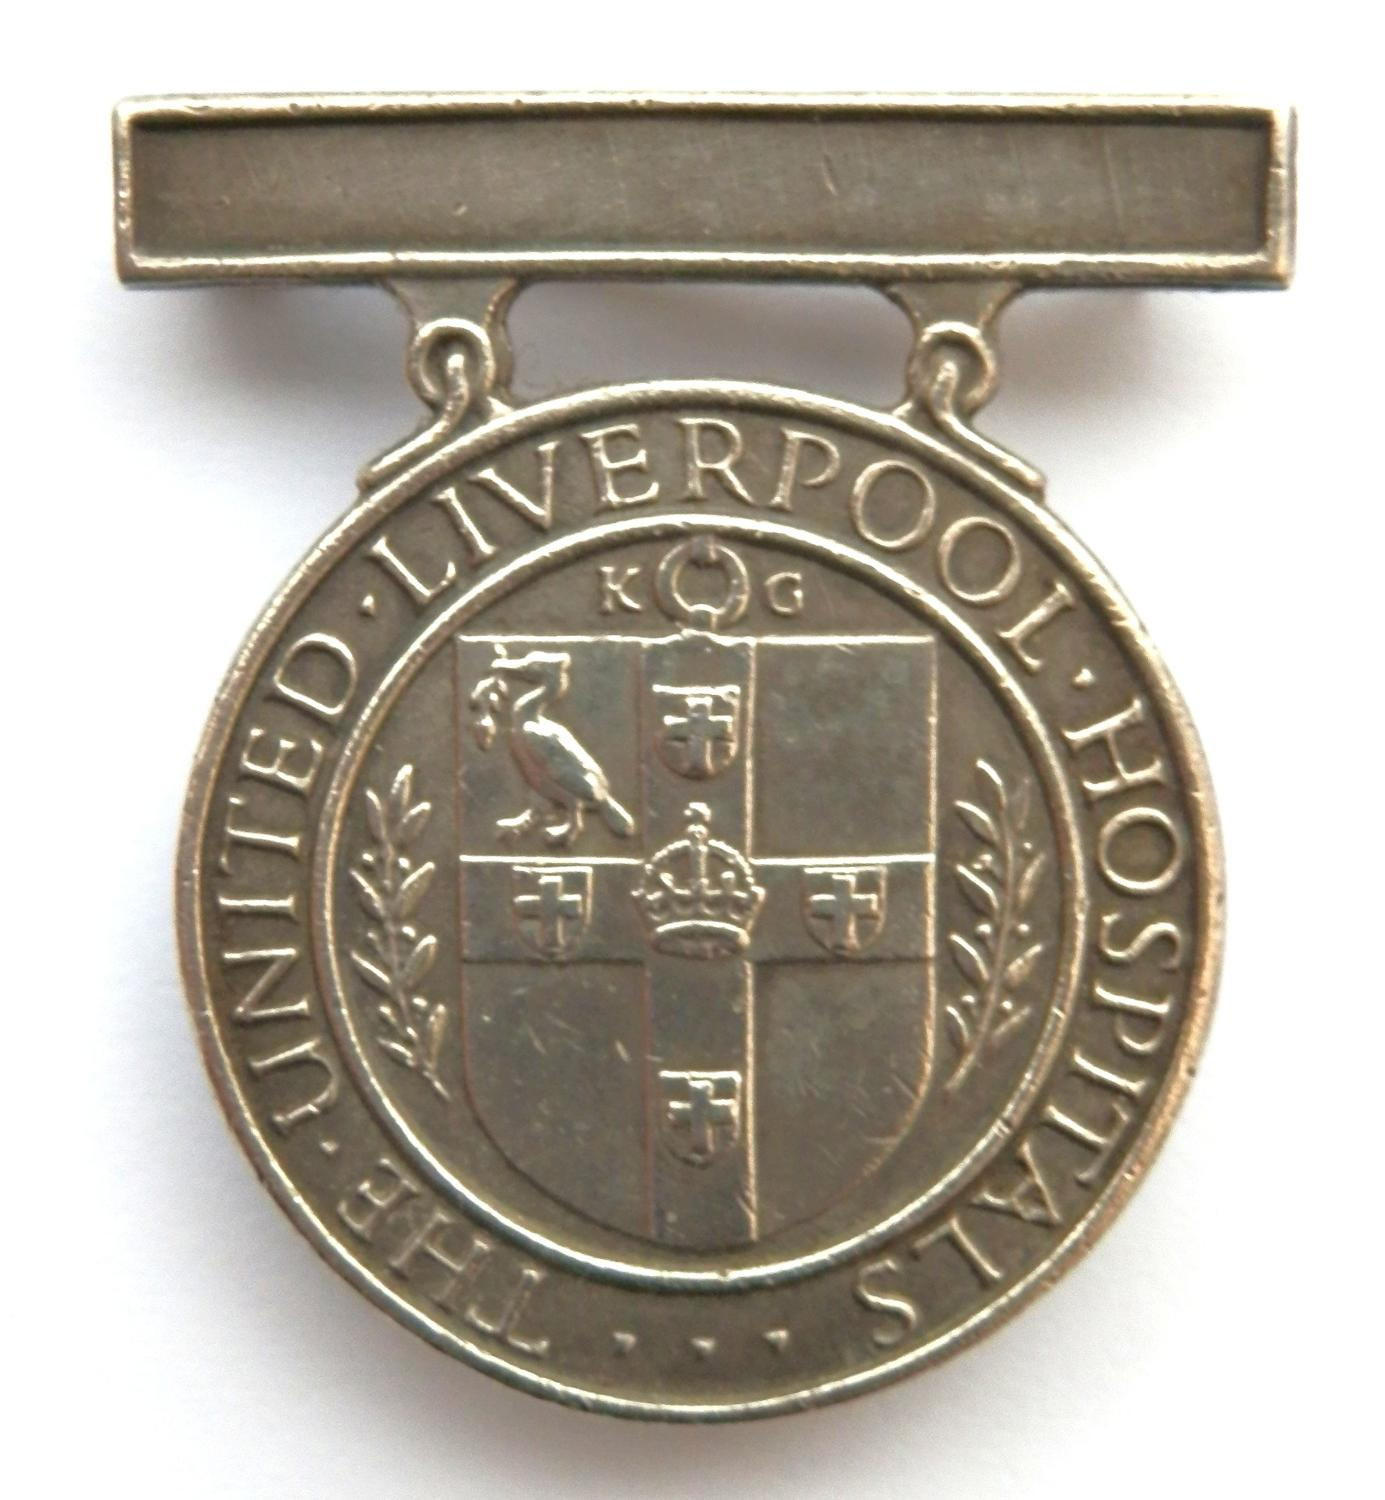 The United Liverpool Hospital, Nursing Badge.